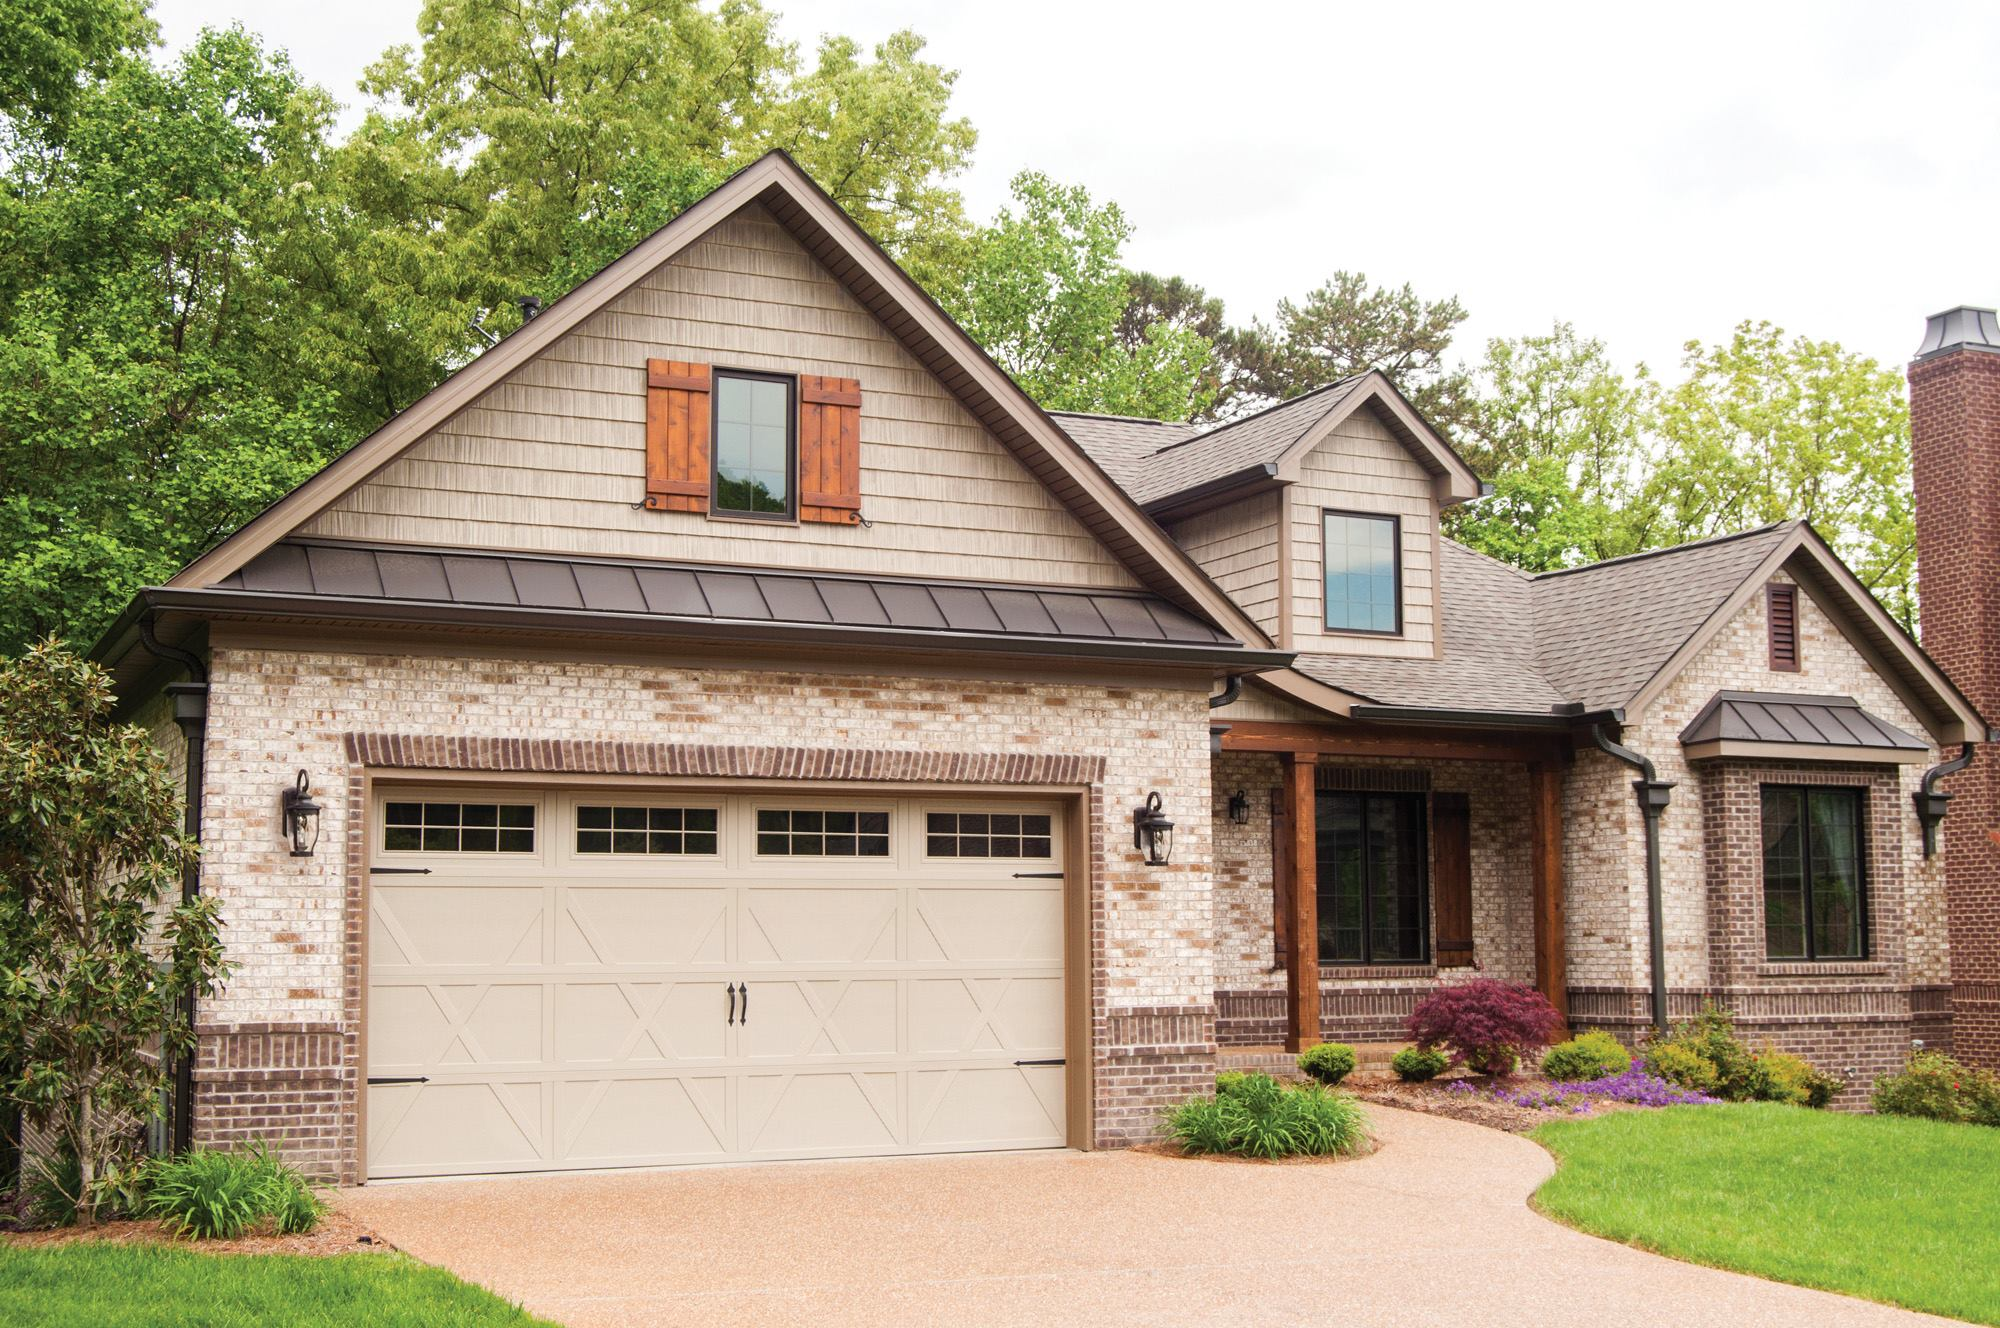 Carriage House Style Garage Door Brings Old World Charm